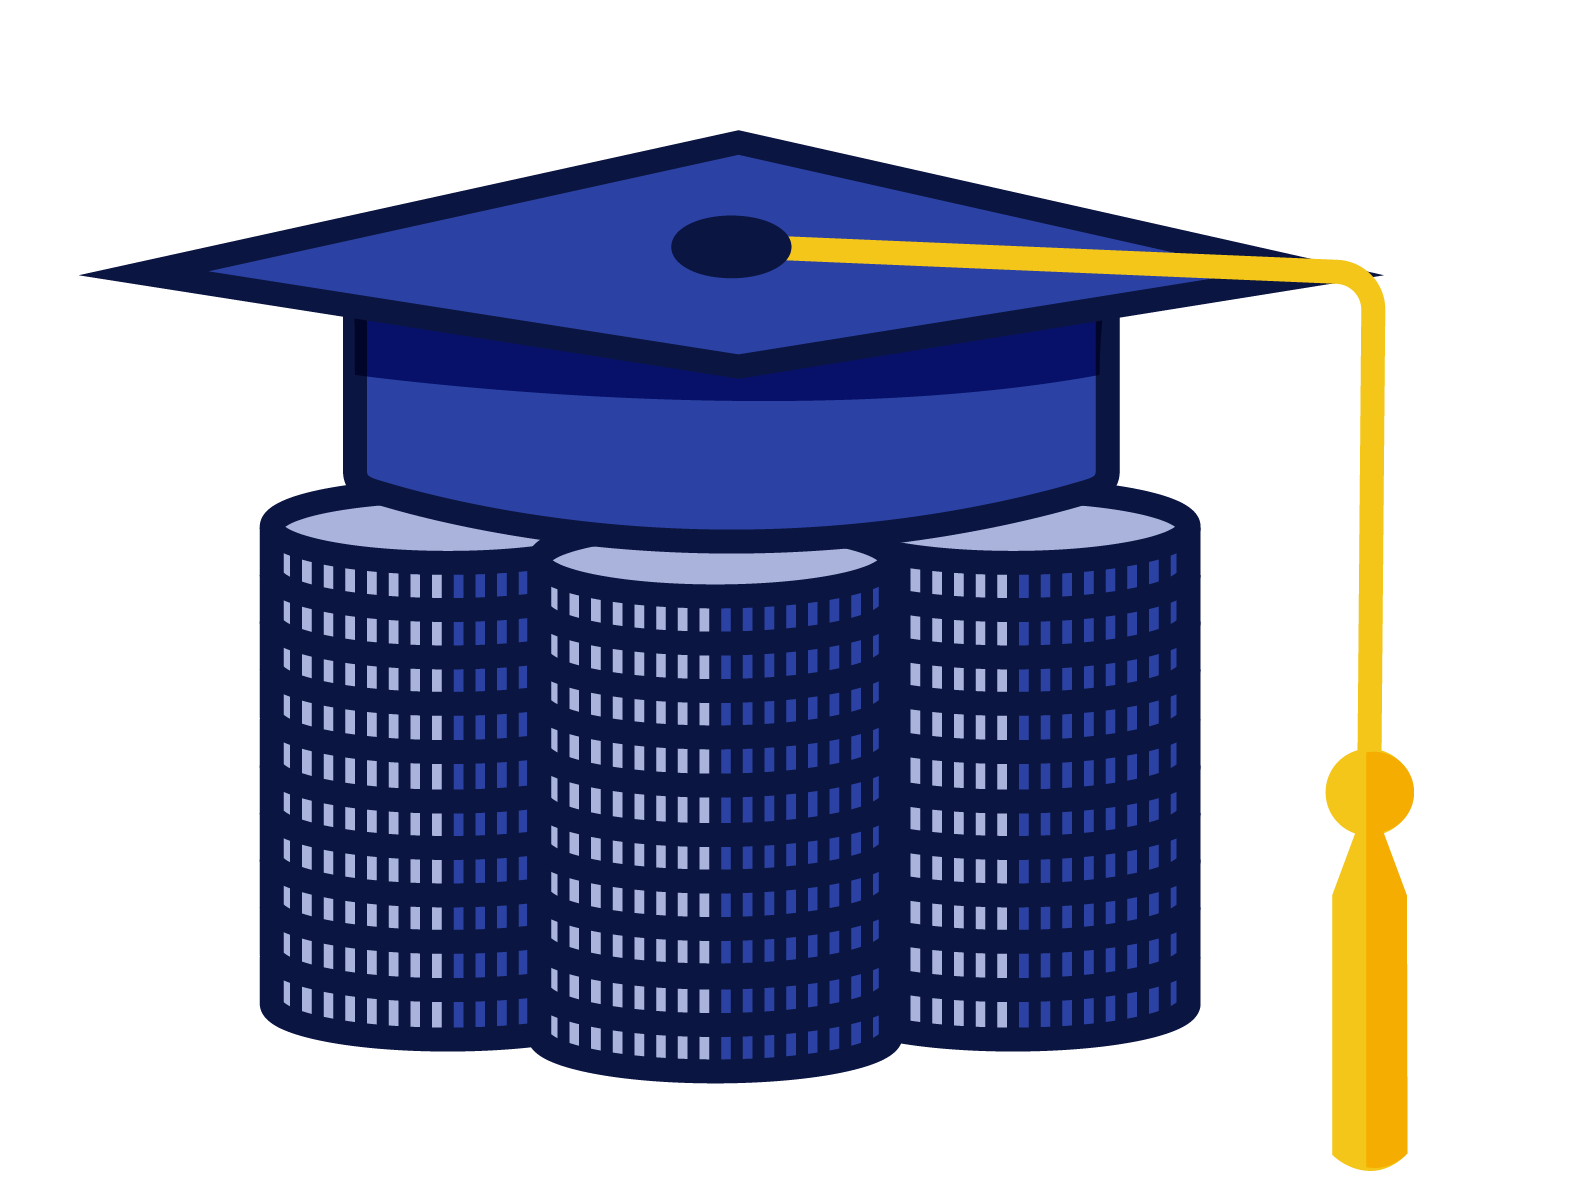 paying for college unit icon